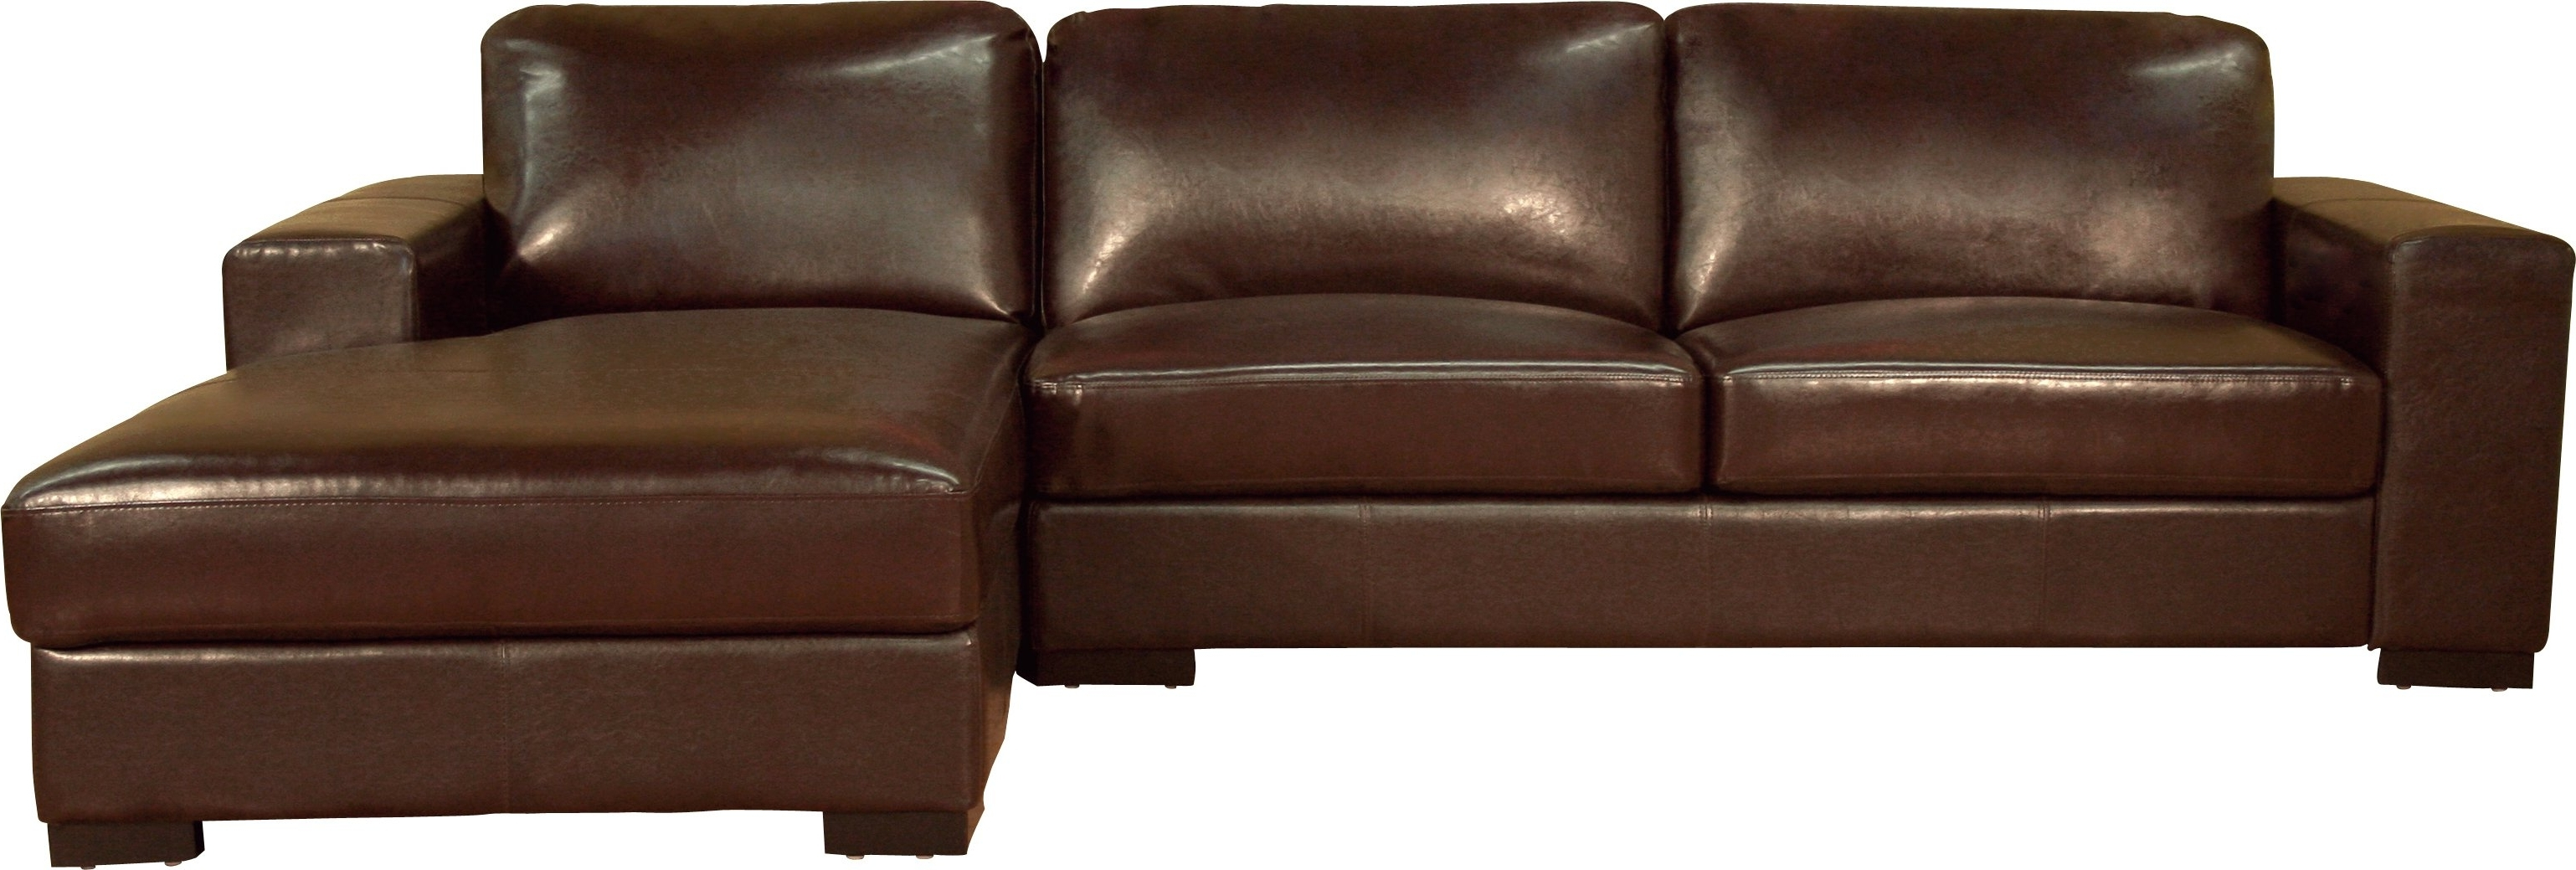 Trendy Tight Brown Leather Sectional Chaise Couch Of Pleasurable Brown For Leather Sofas With Chaise (View 13 of 15)